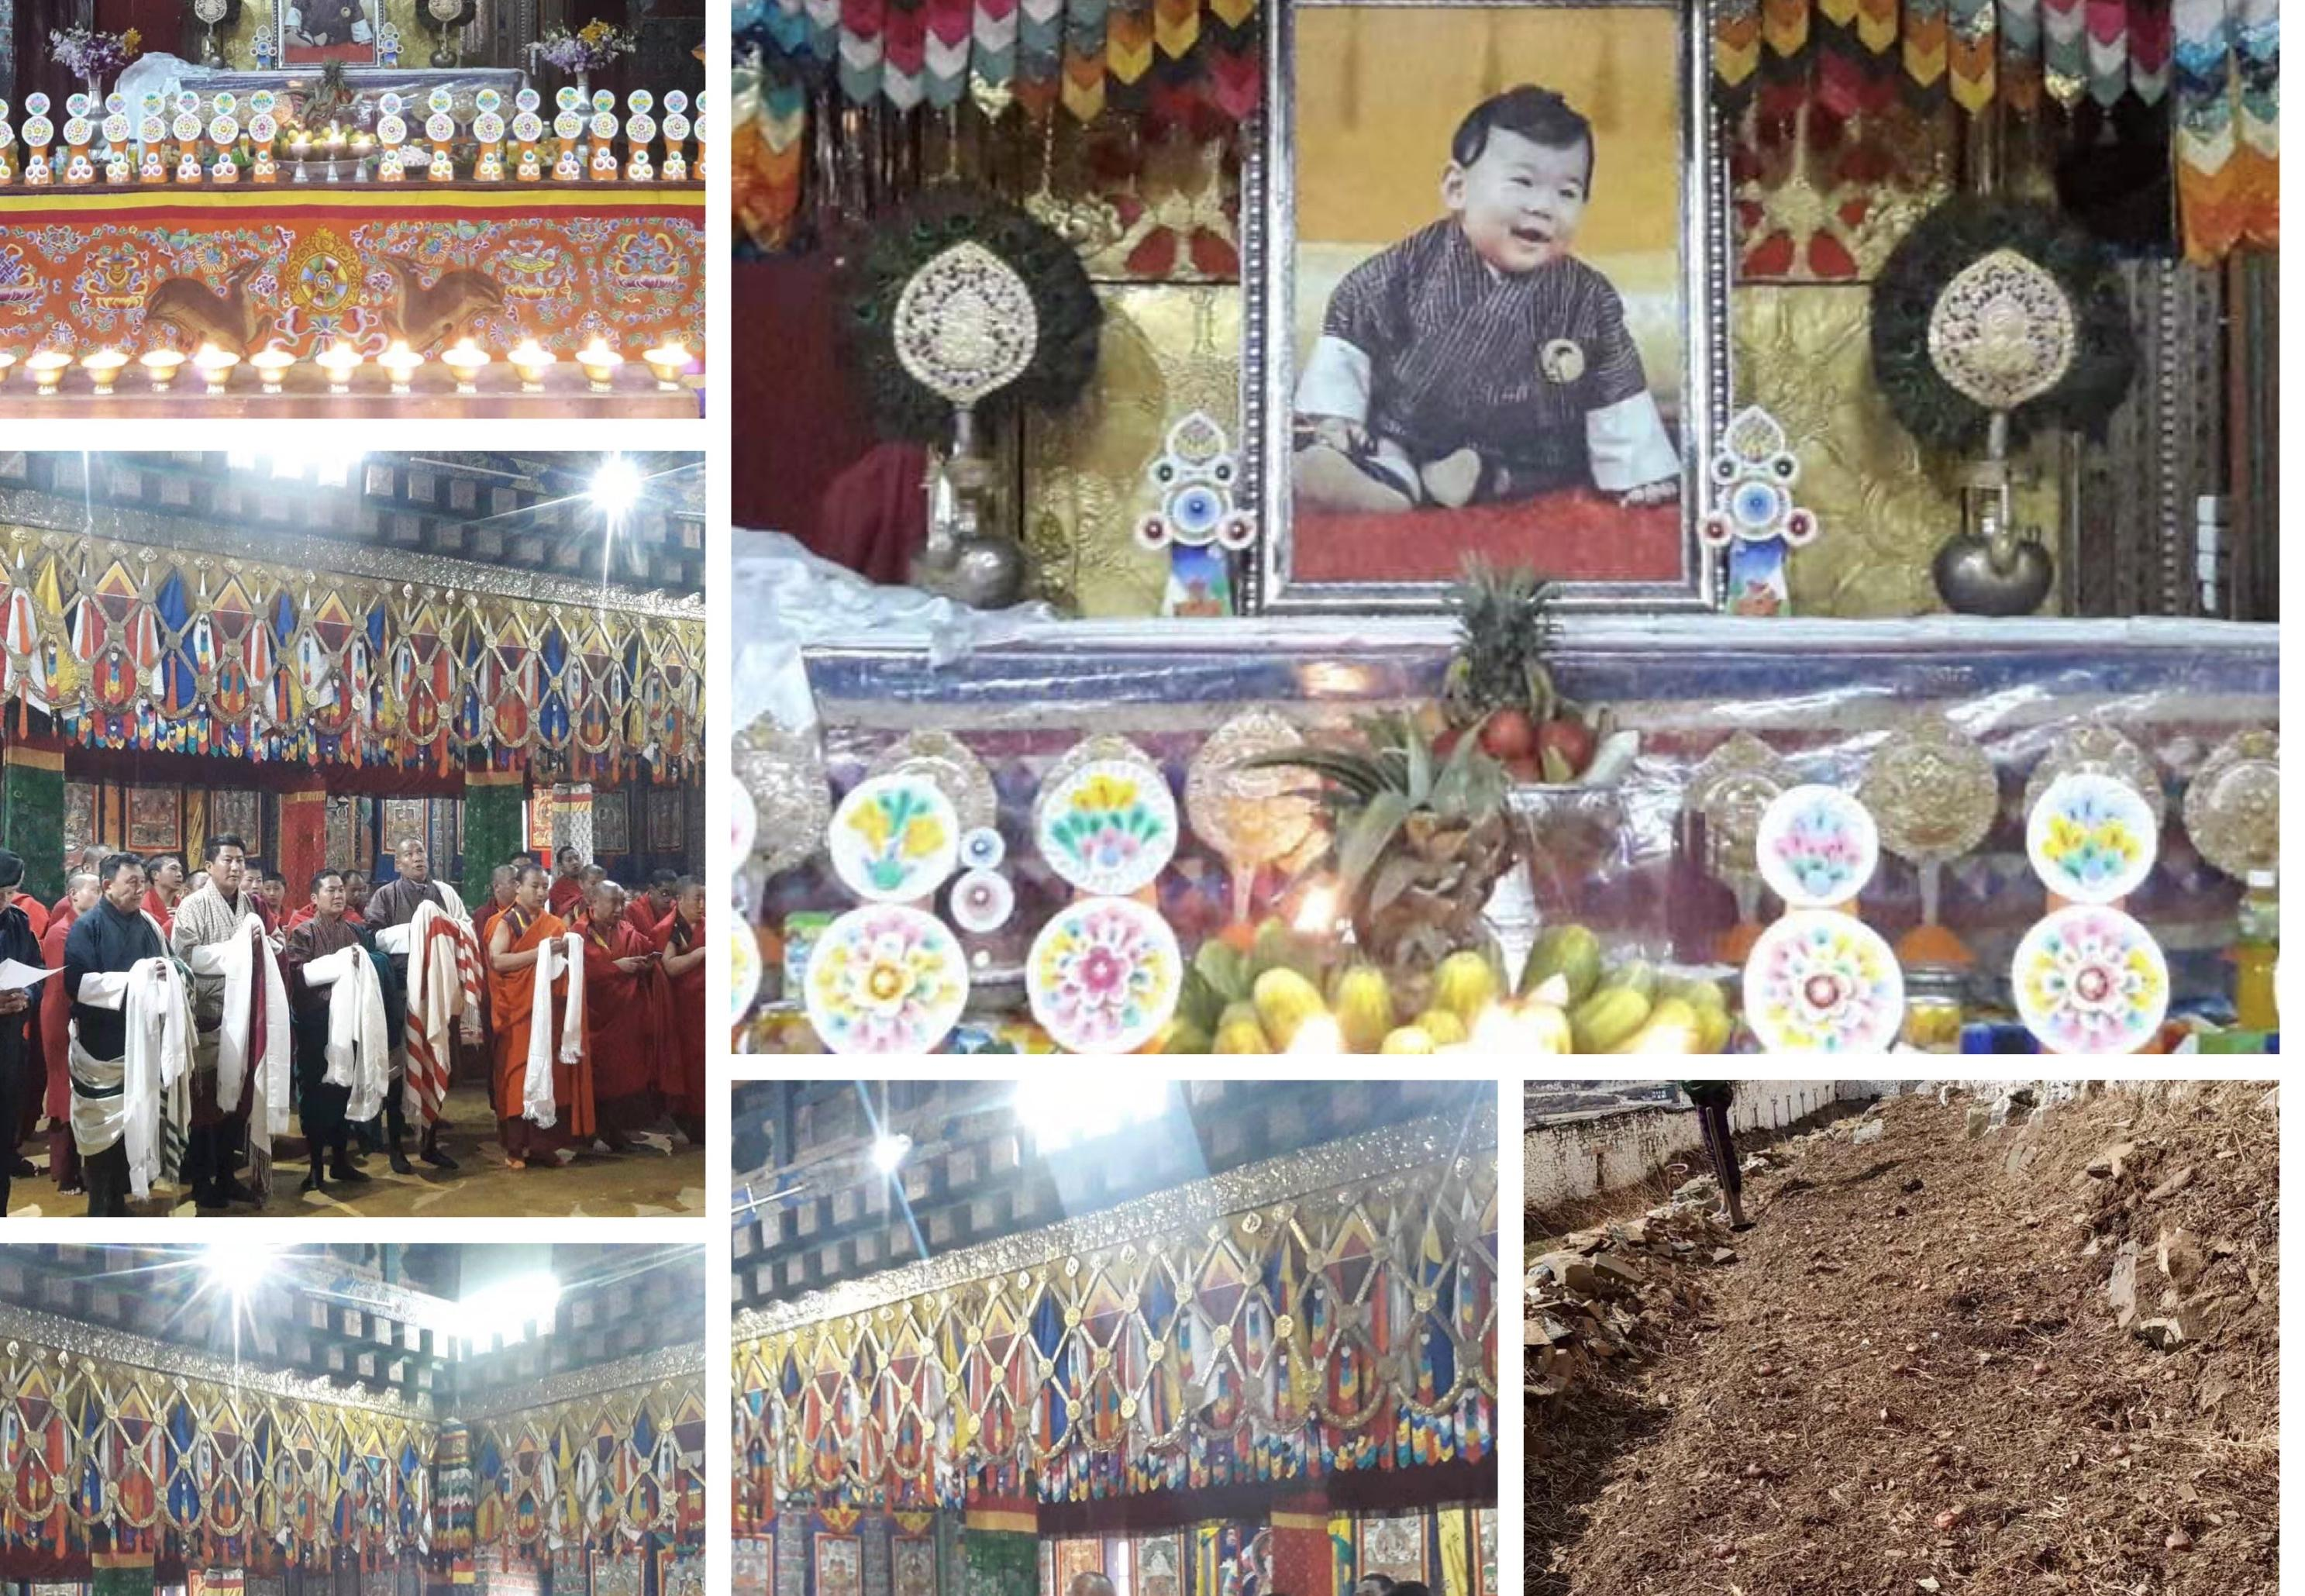 Paro Dzongkhg Celebrates the 4th Birth Anniversary of our Beloved Gyalsey